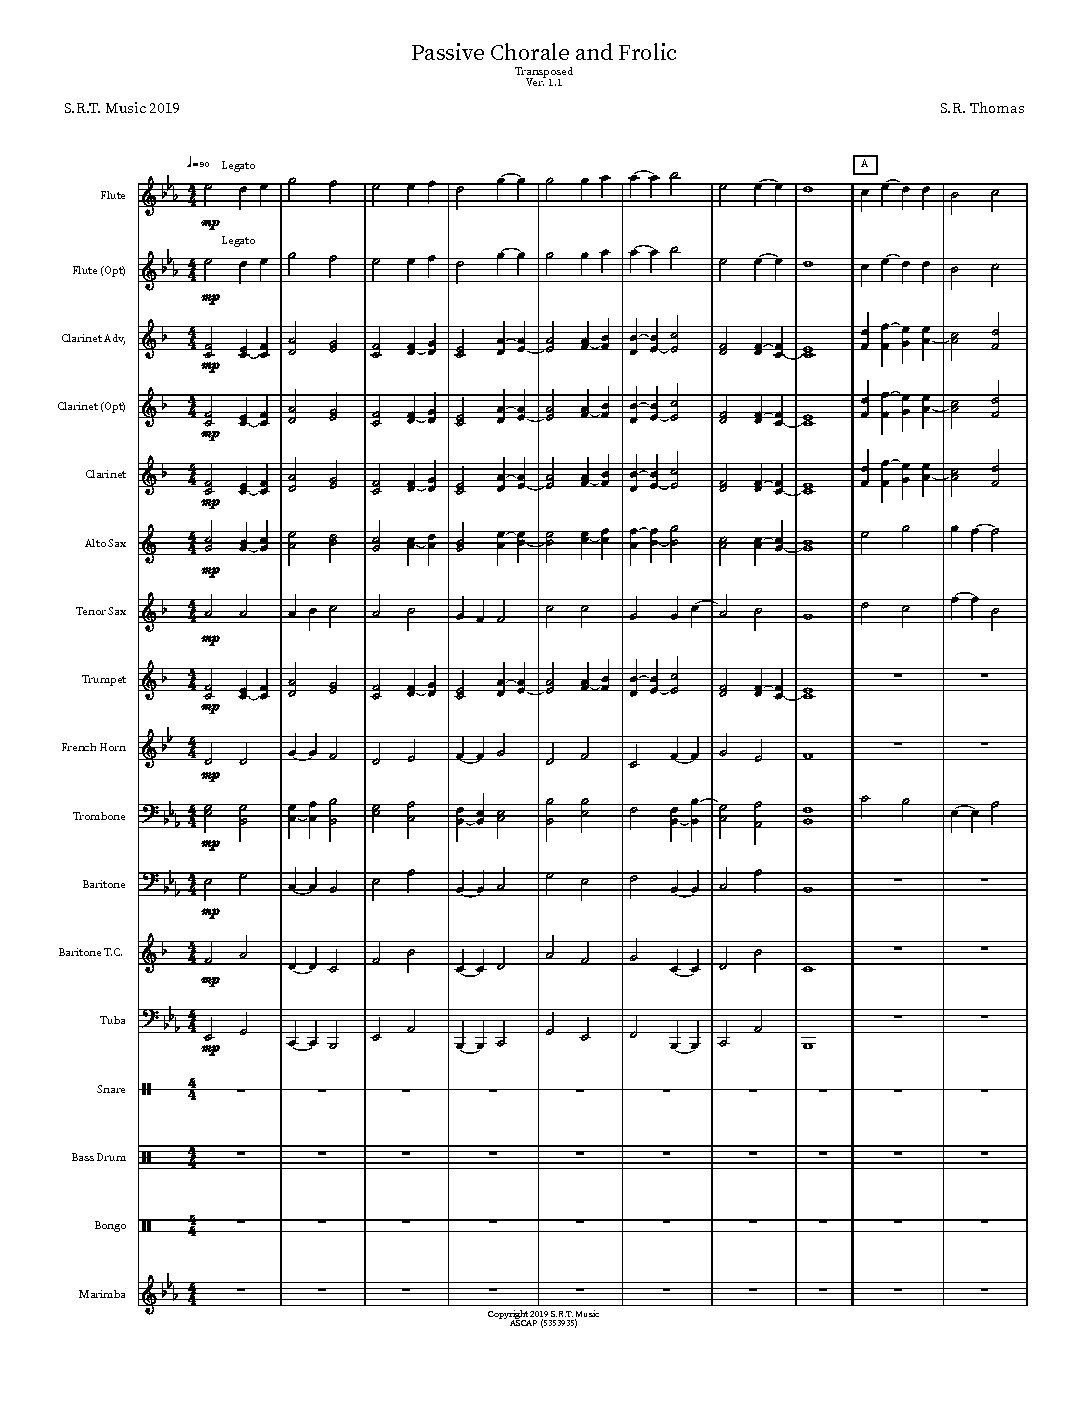 Passive Chorale and Frolic score SMMP pdf